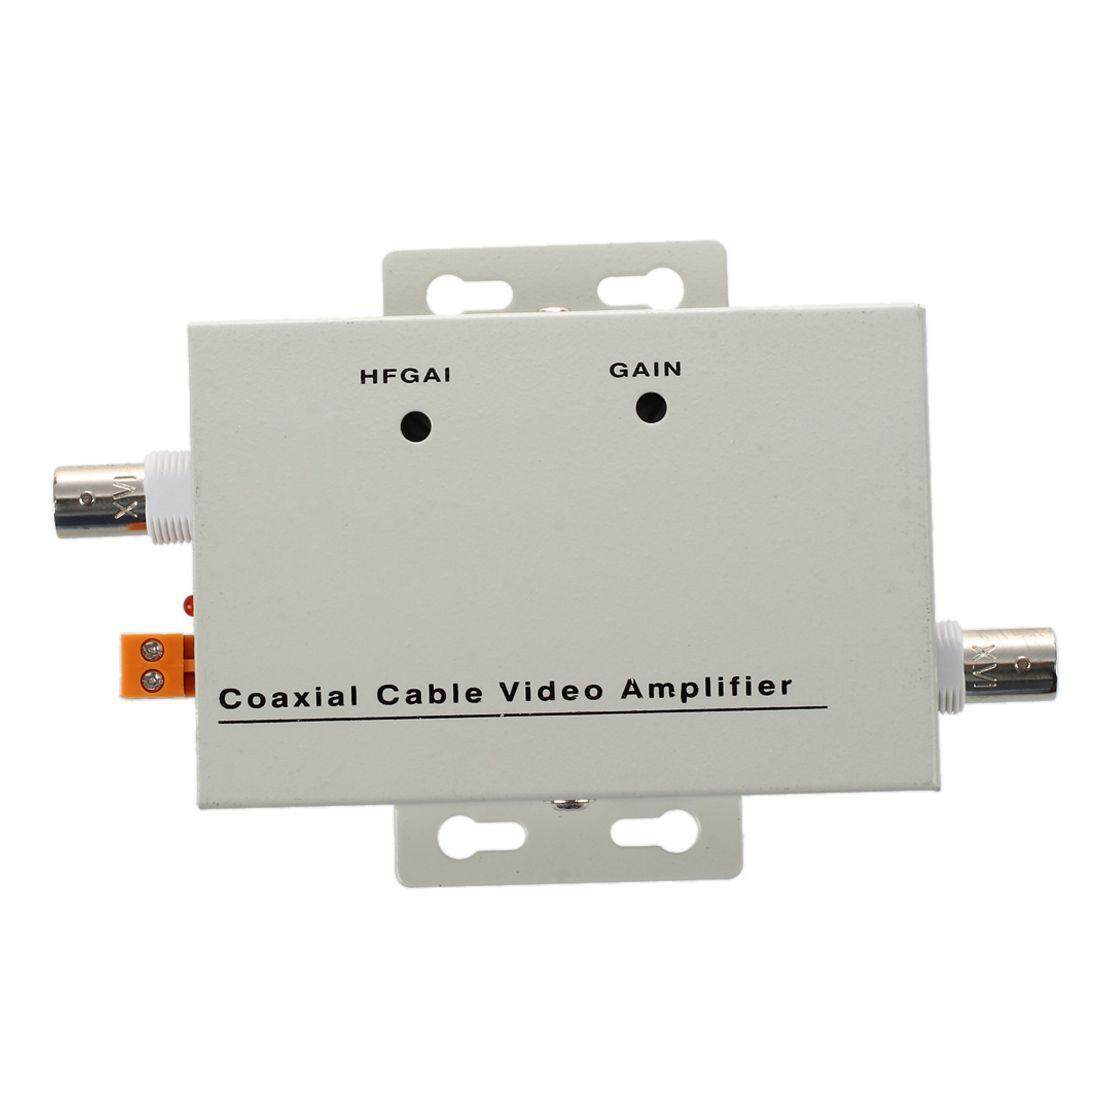 Buy Sell Cheapest Cctv Camera Coaxial Best Quality Product Deals Easy Wire Power 21mm Dc Plug For Cameras With Screw Terminals Bnc Video Balun Amplifier Intl